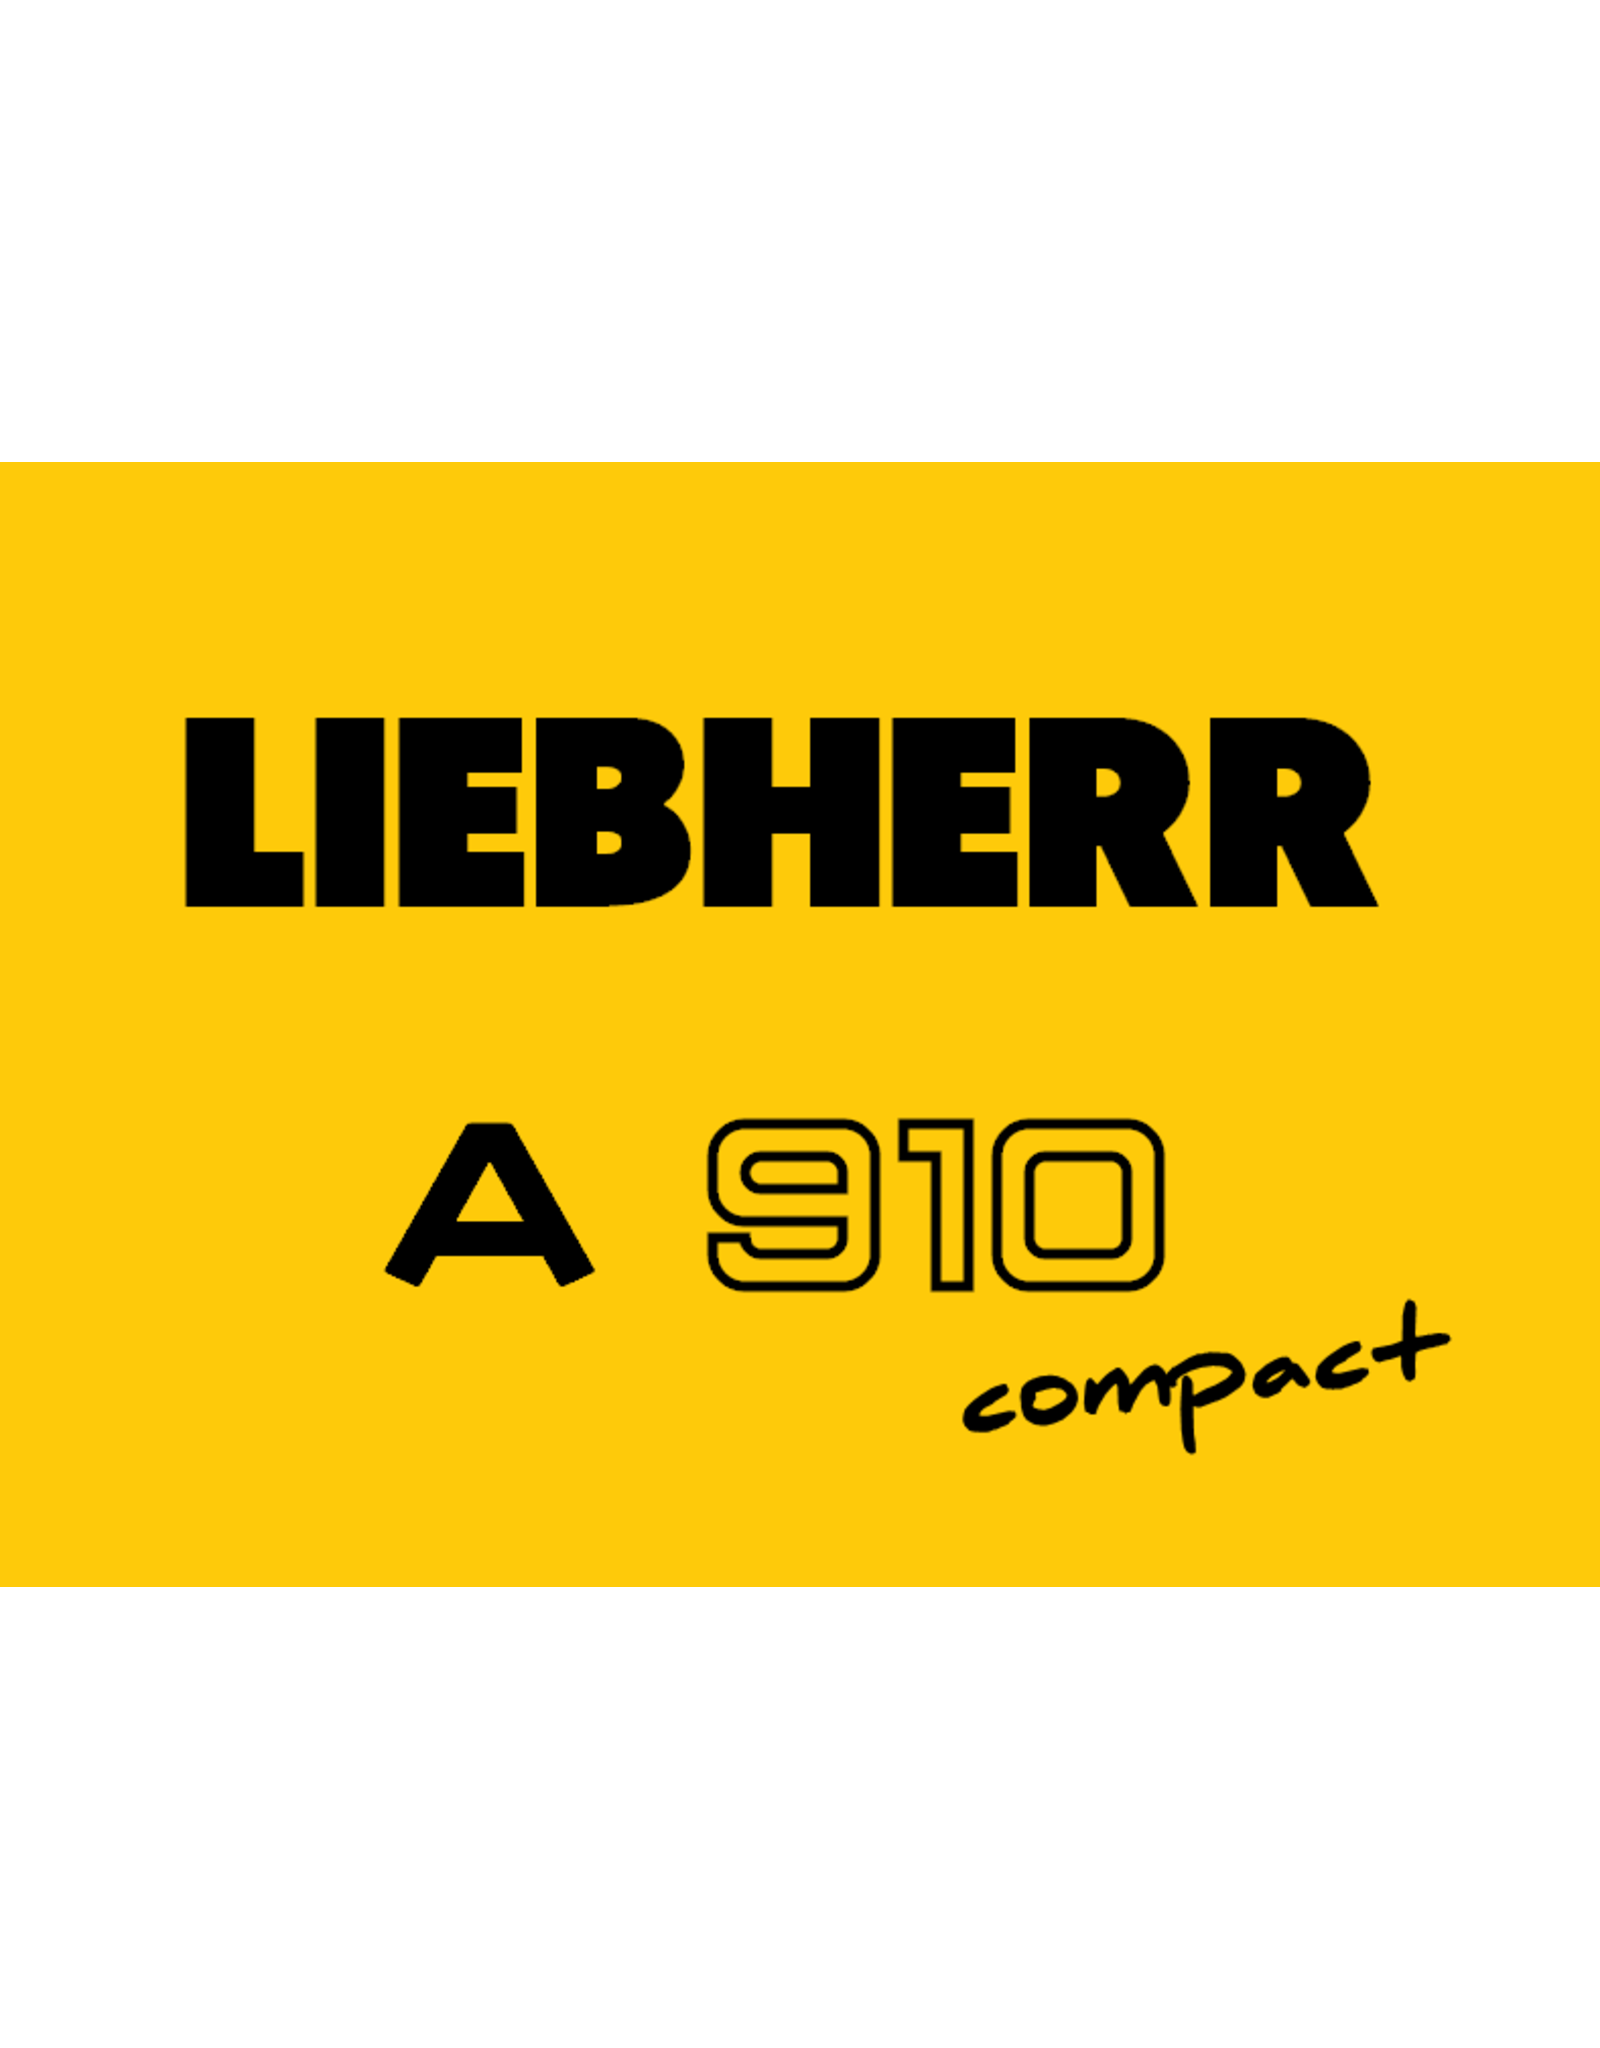 Echle Hartstahl GmbH FOPS for Liebherr A 910 Compact